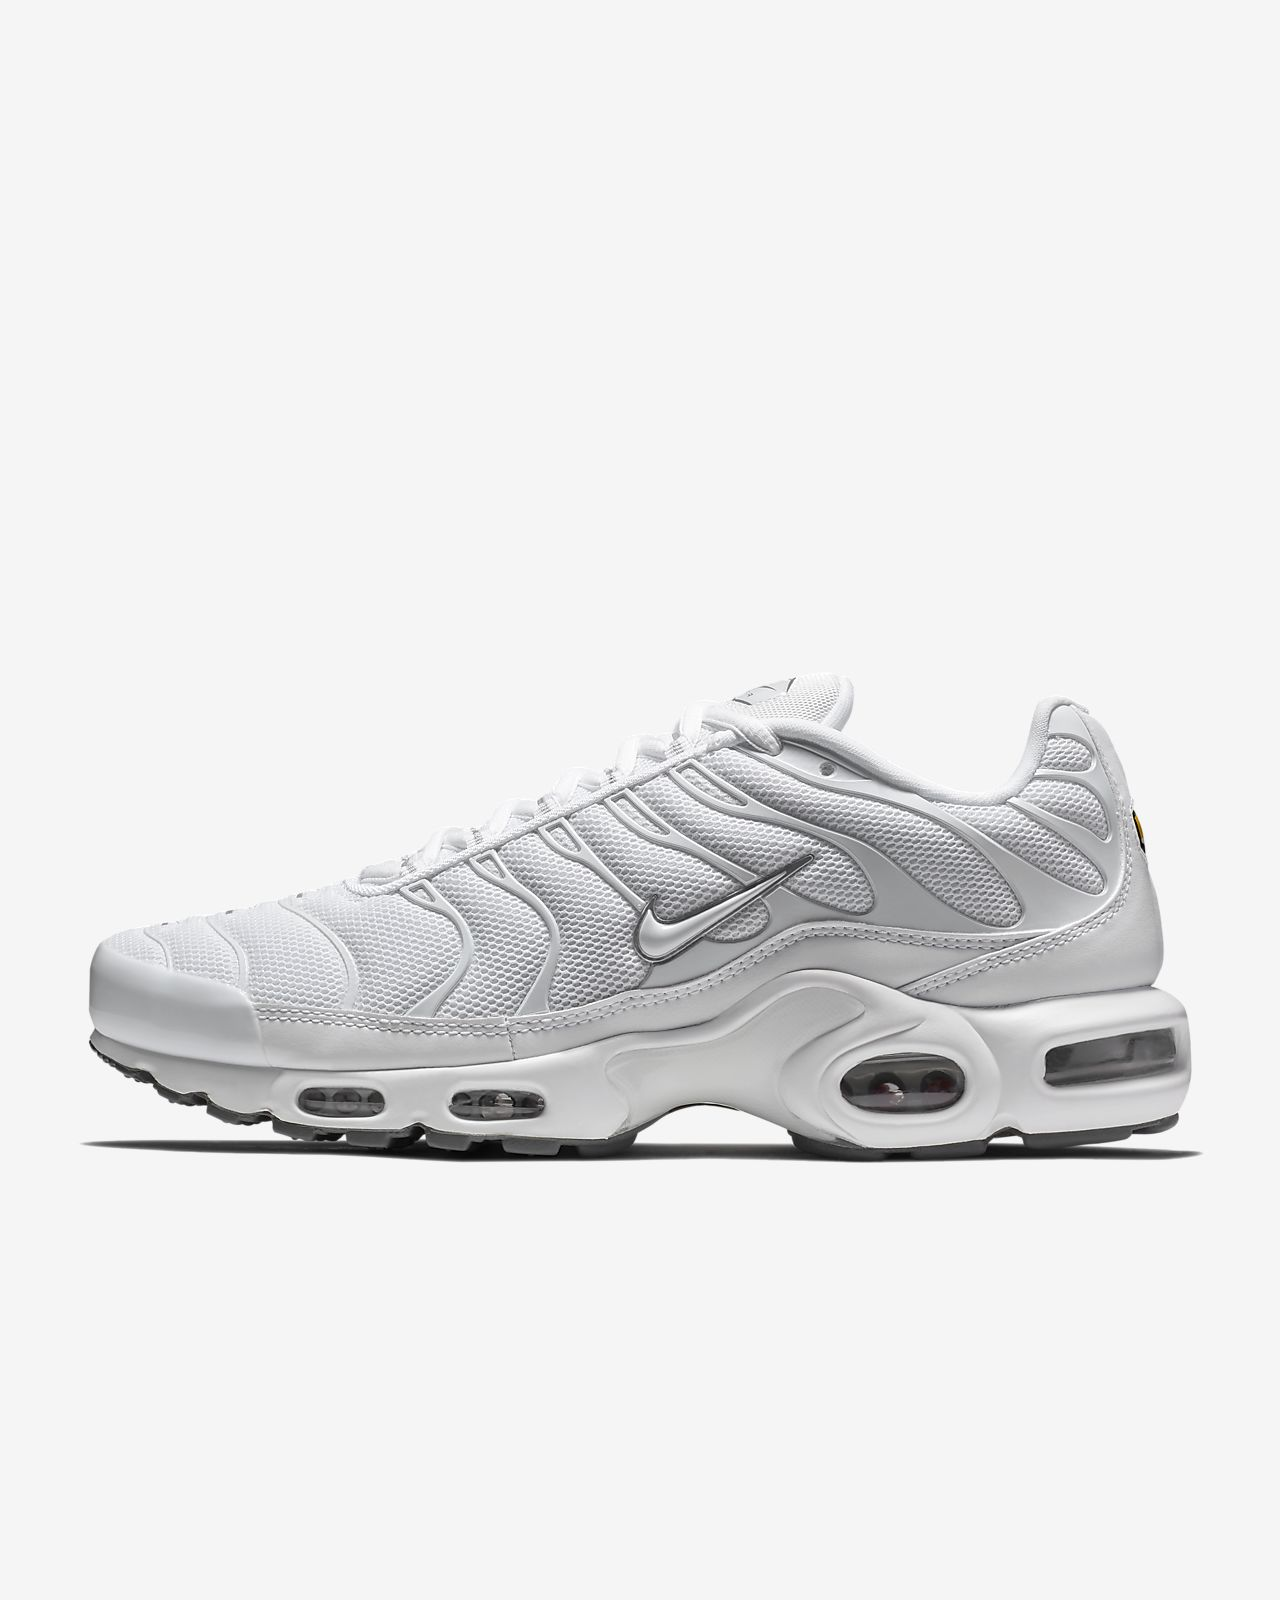 Nike Air Max 95 Premium white white black